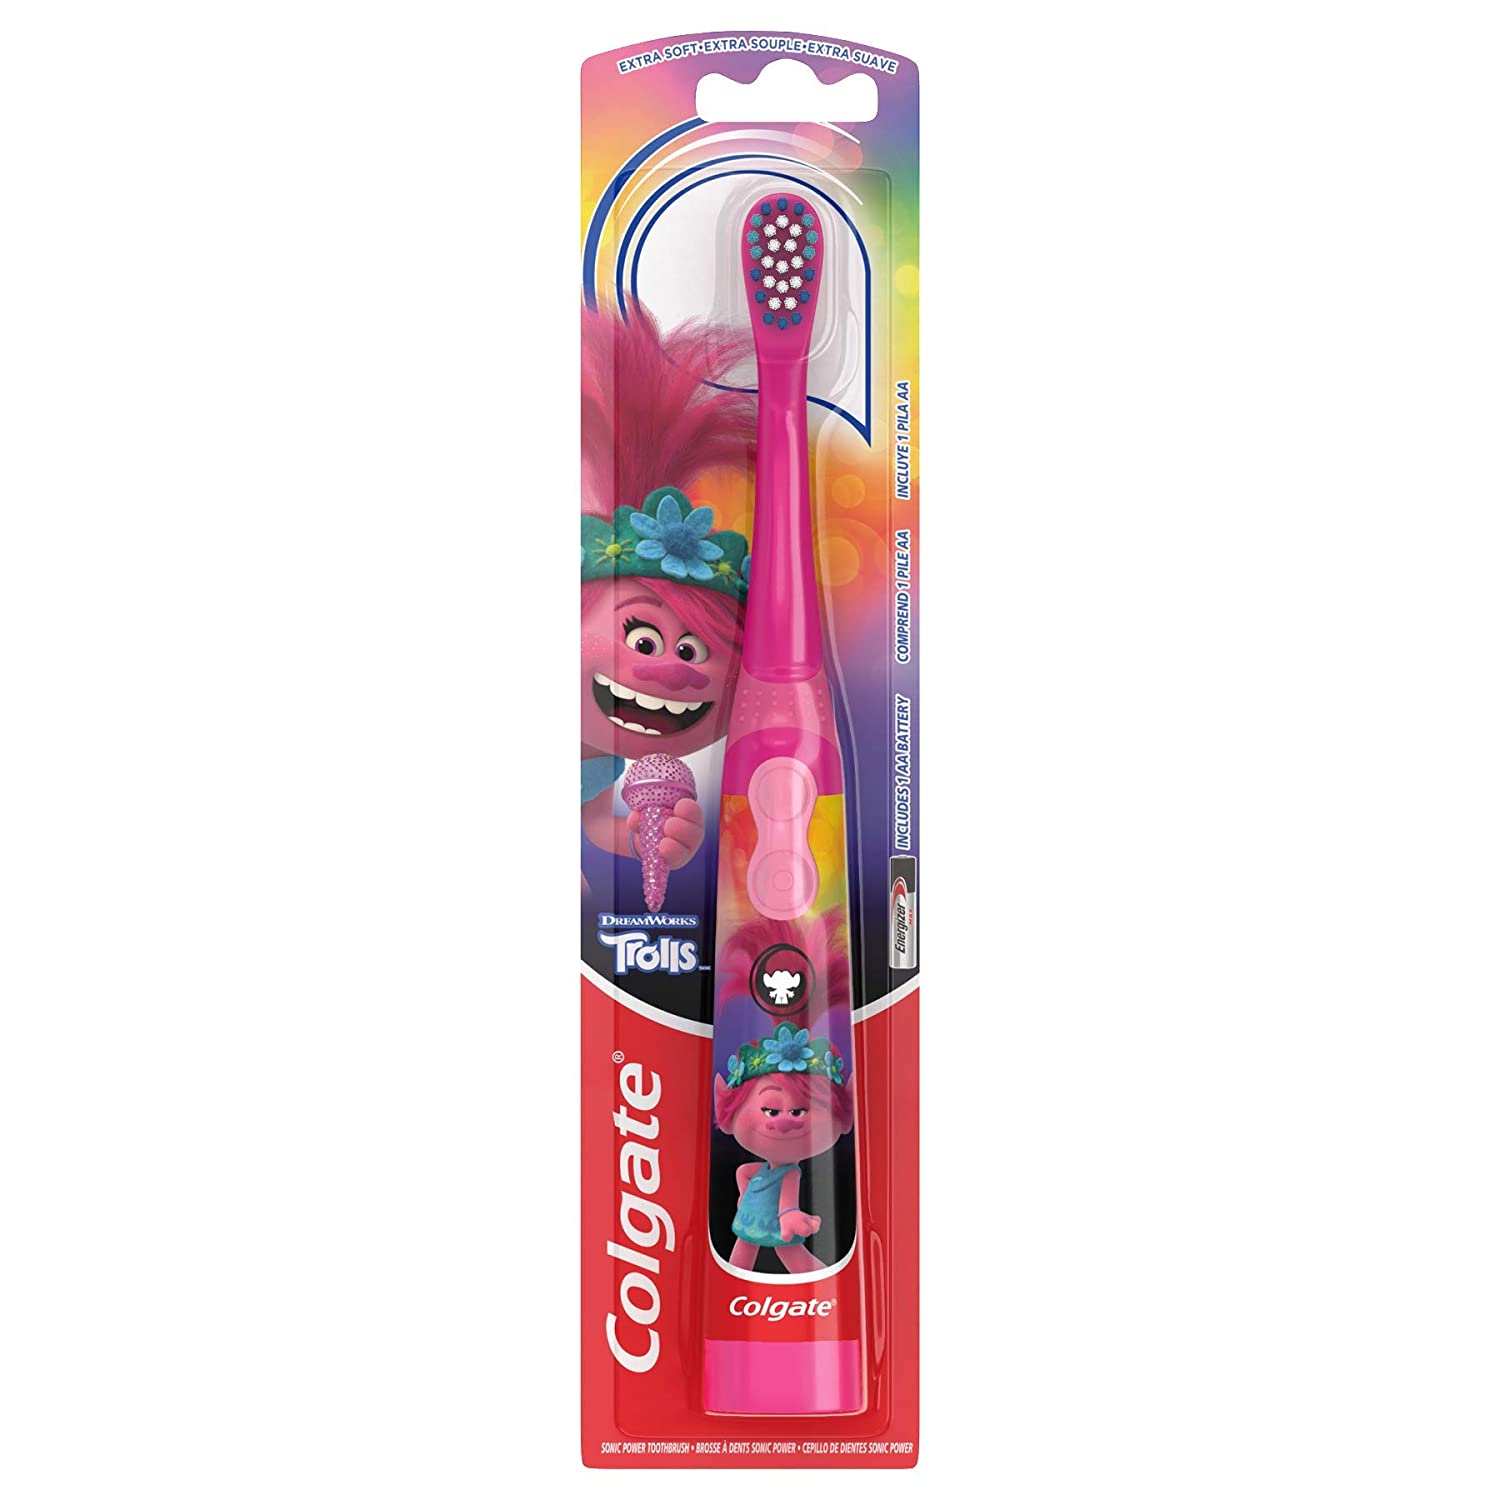 stocking-stuffers-for-kids-toothbrush